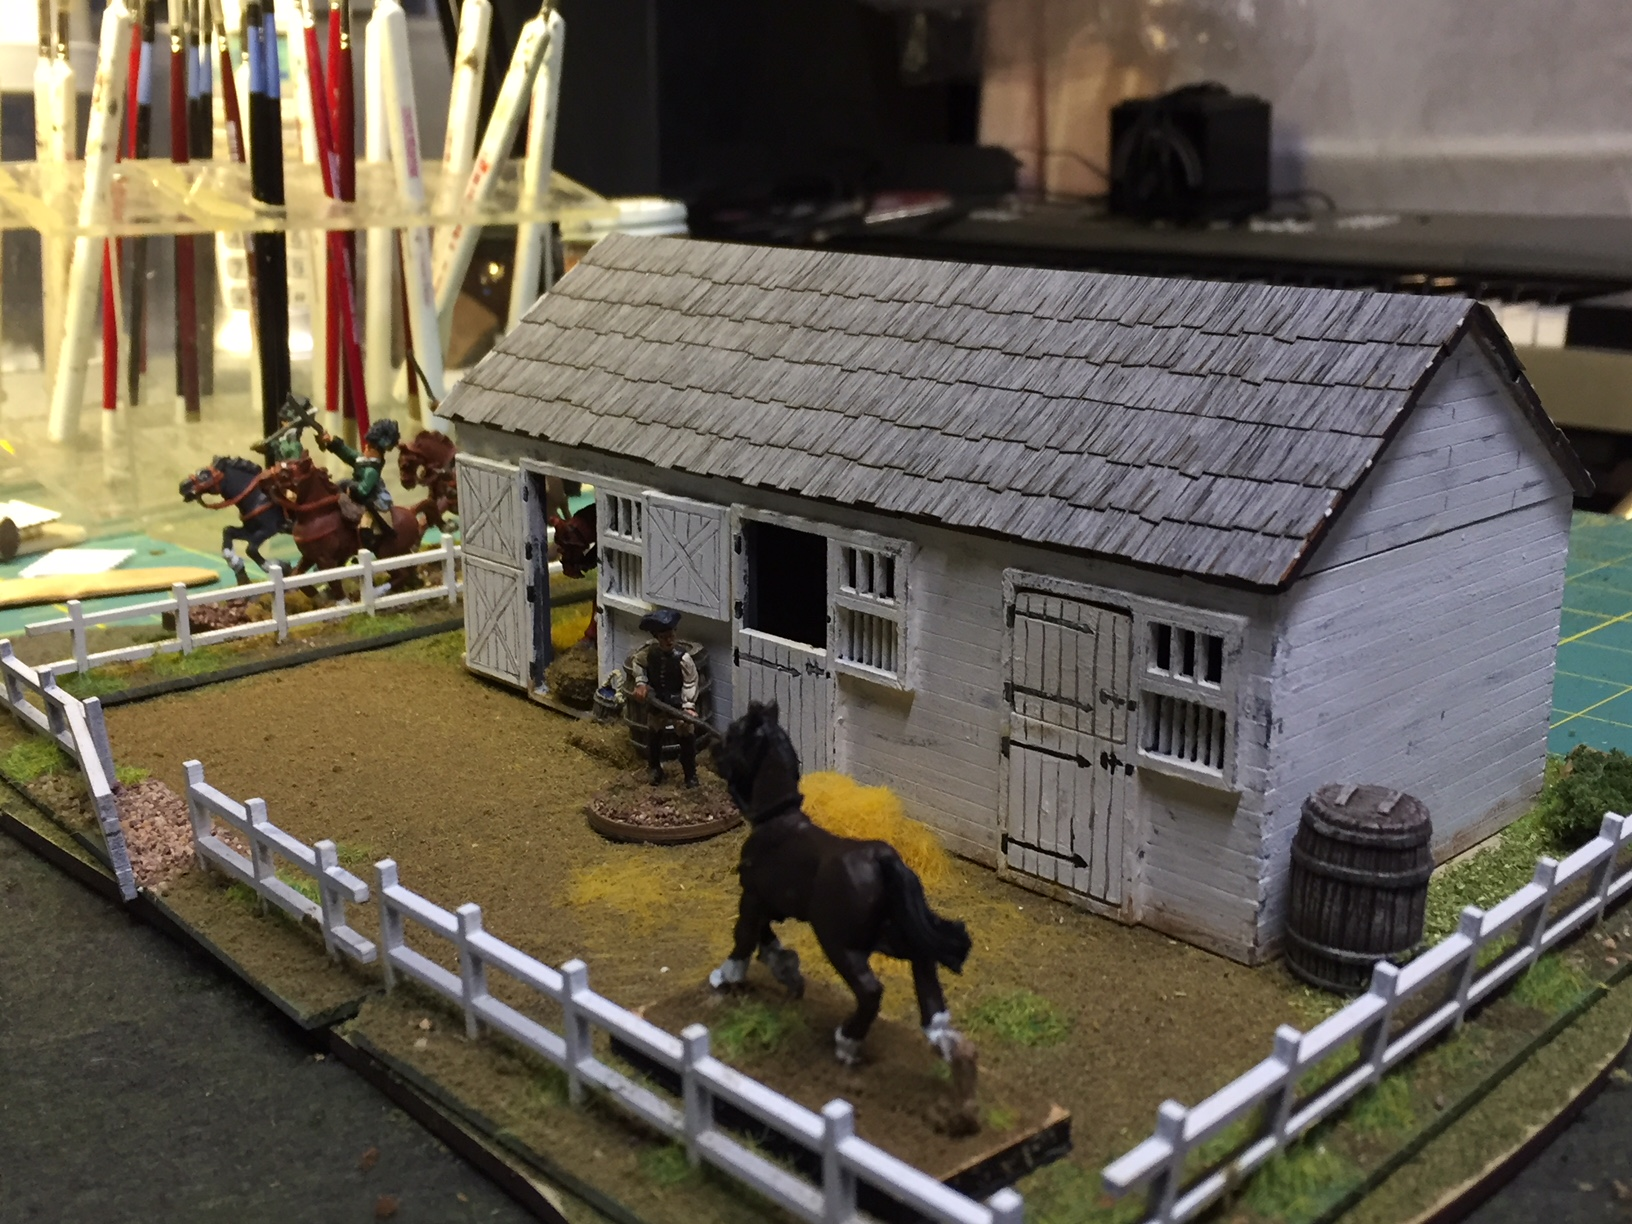 Stable (and horse) from Ed Bowen